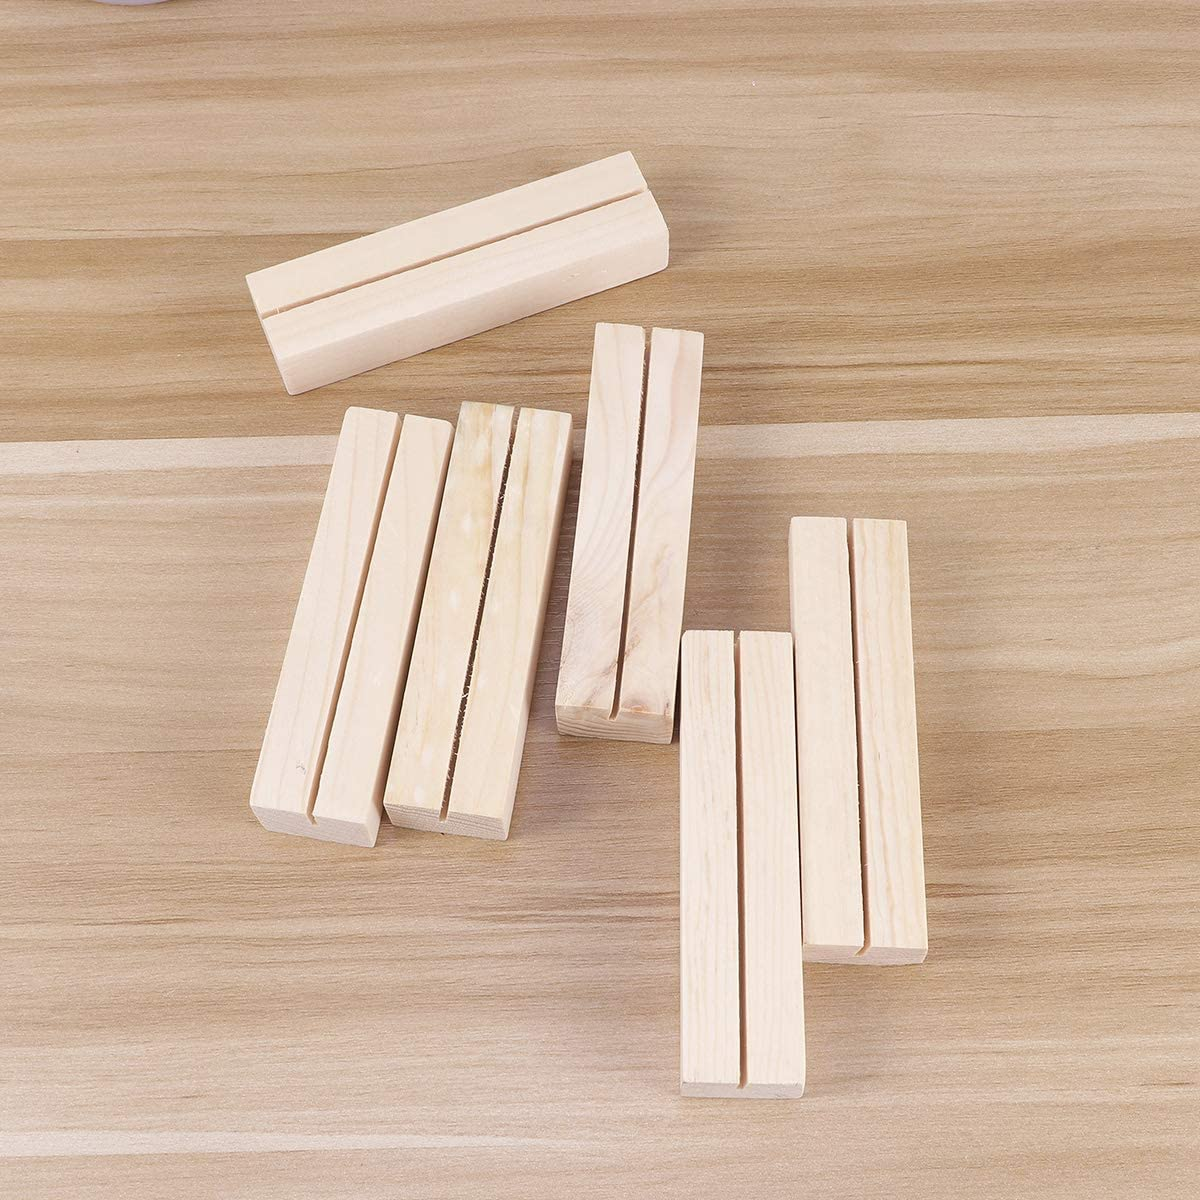 Amosfun 12pcs Natural Wood Photo Holder Memo Clips Business Card Holder Clamps Stand Desktop Message Crafts Gifts Office Stationery Organizer Home Decoration 7 x 1.8 x 2.7cm